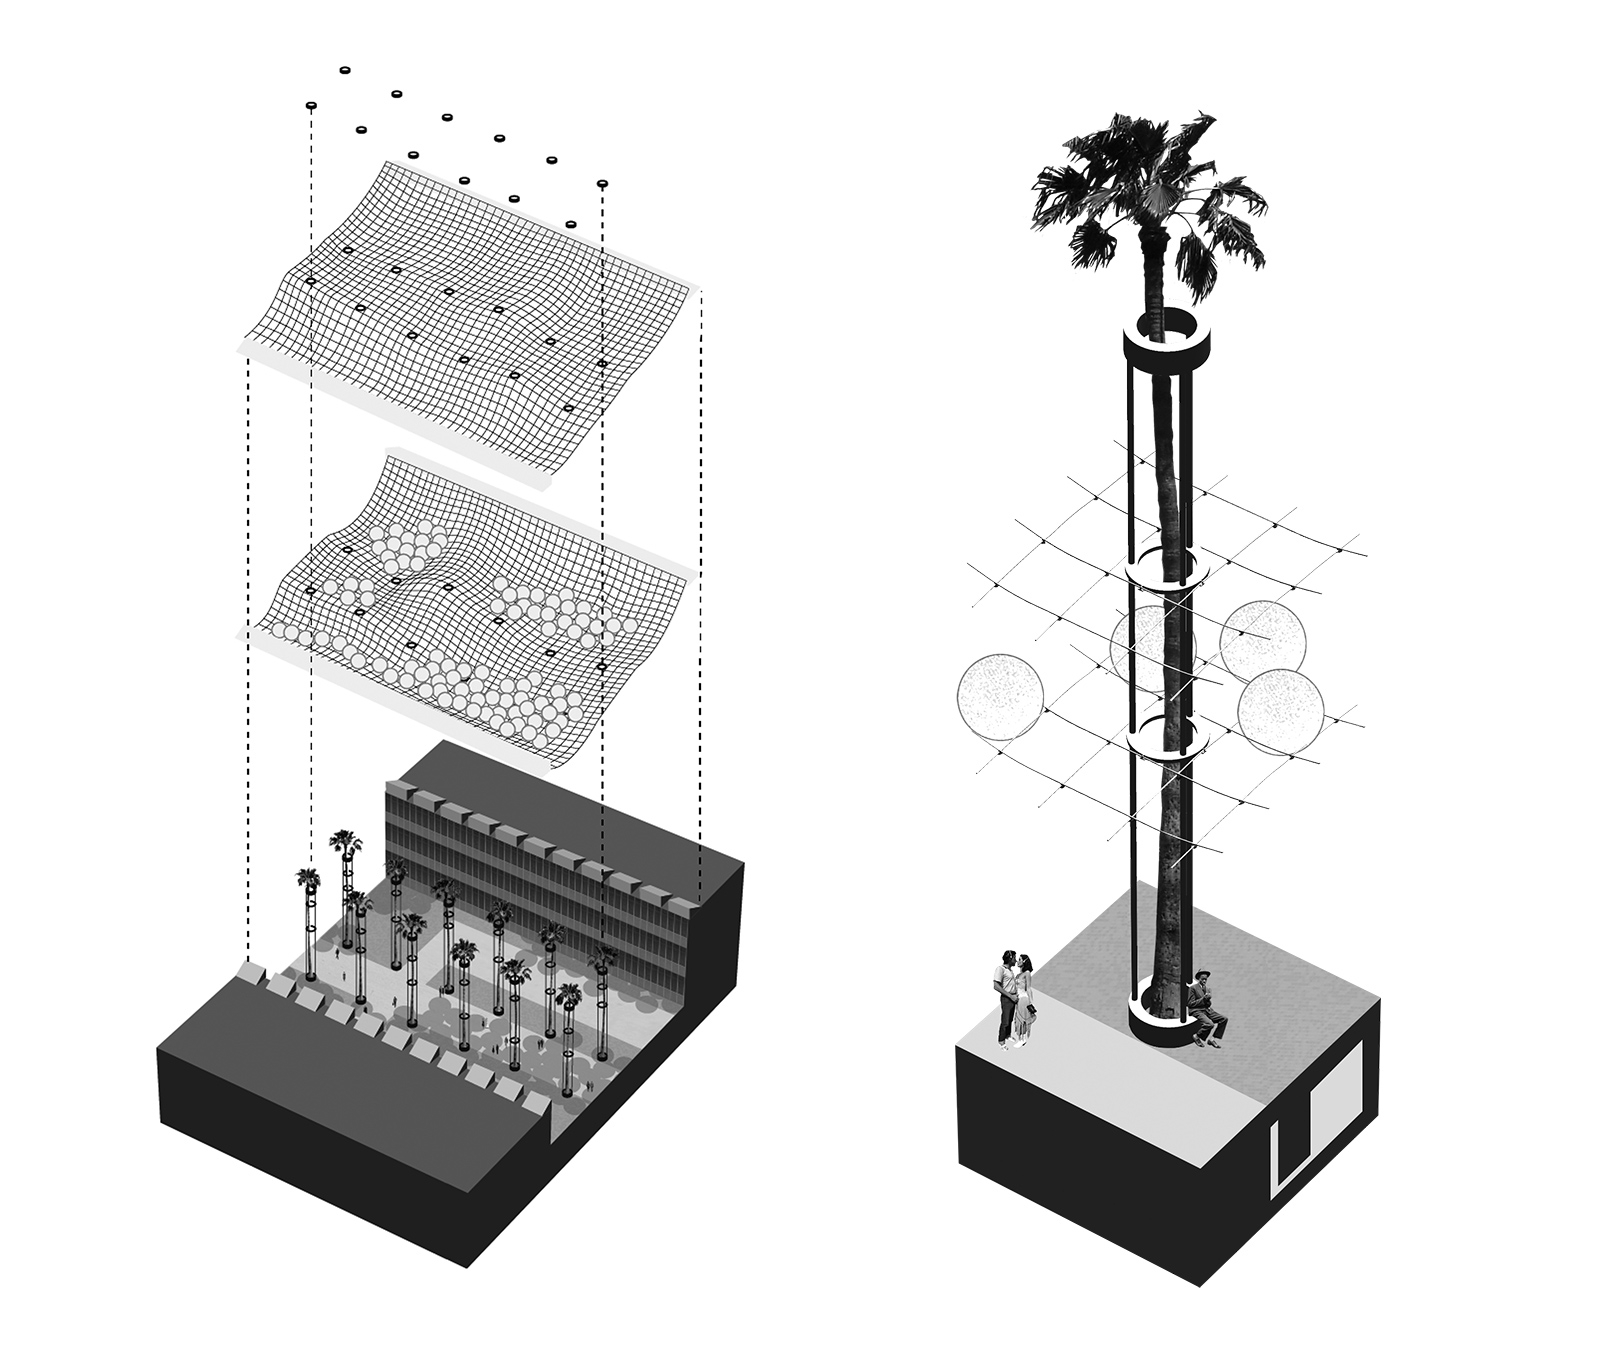 Pair of exploded diagrams of the various layers comprising the PEP shade canopy system: the meshes, hydraulics and balls